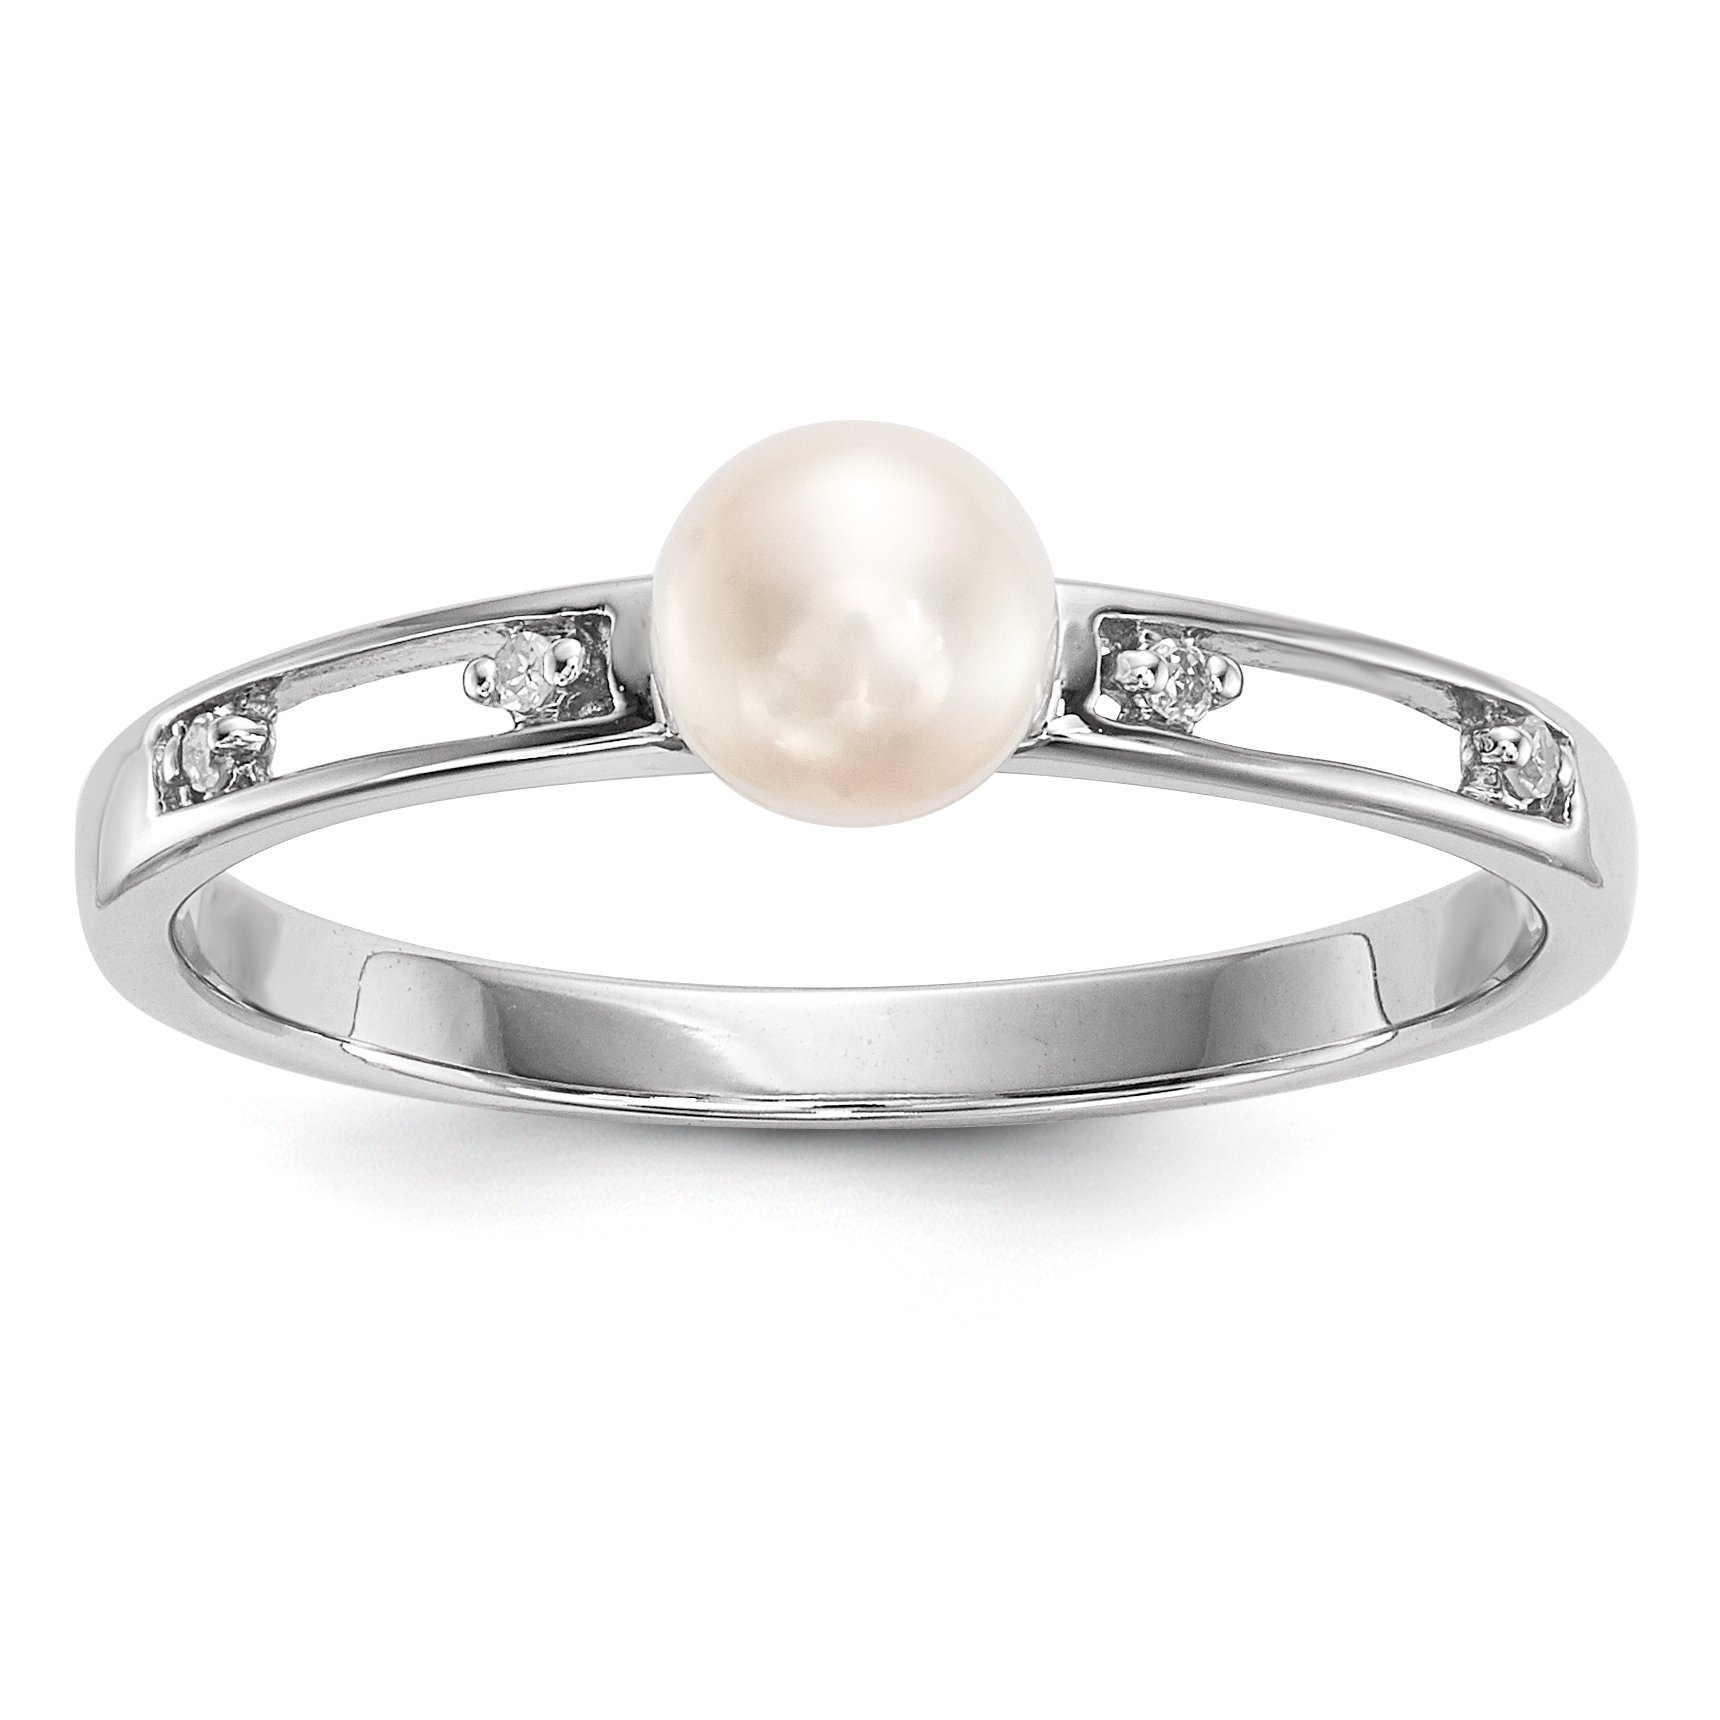 ICE CARATS 14k White Gold Freshwater Cultured Pearl Diamond Band Ring Size 7.00 Fine Jewelry Gift Set For Women Heart